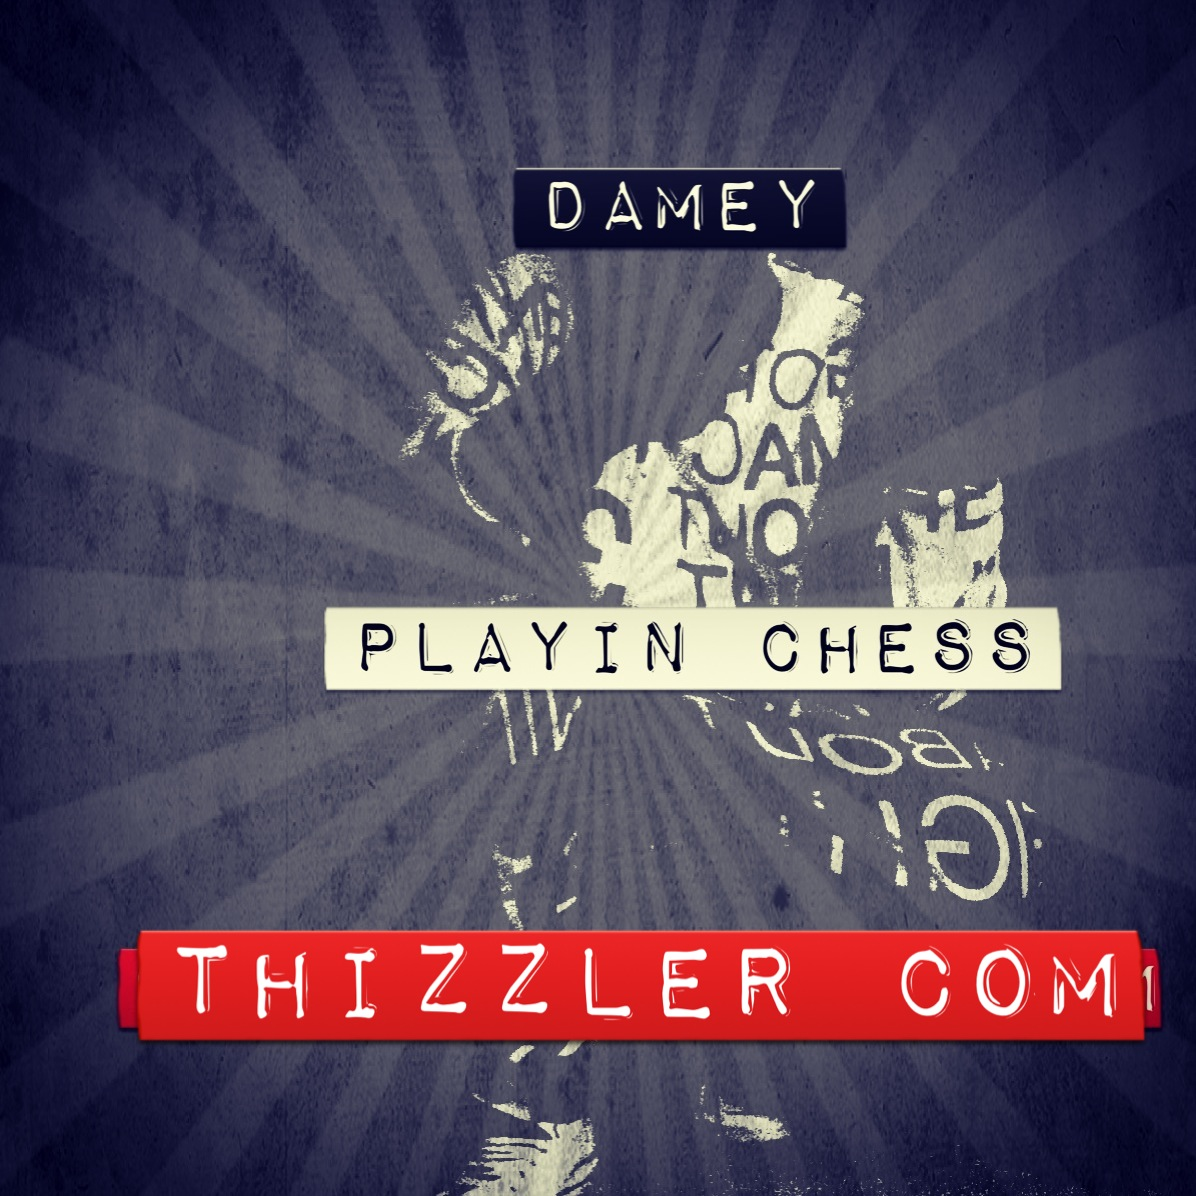 Damey - Playin Chess [Thizzler.com]